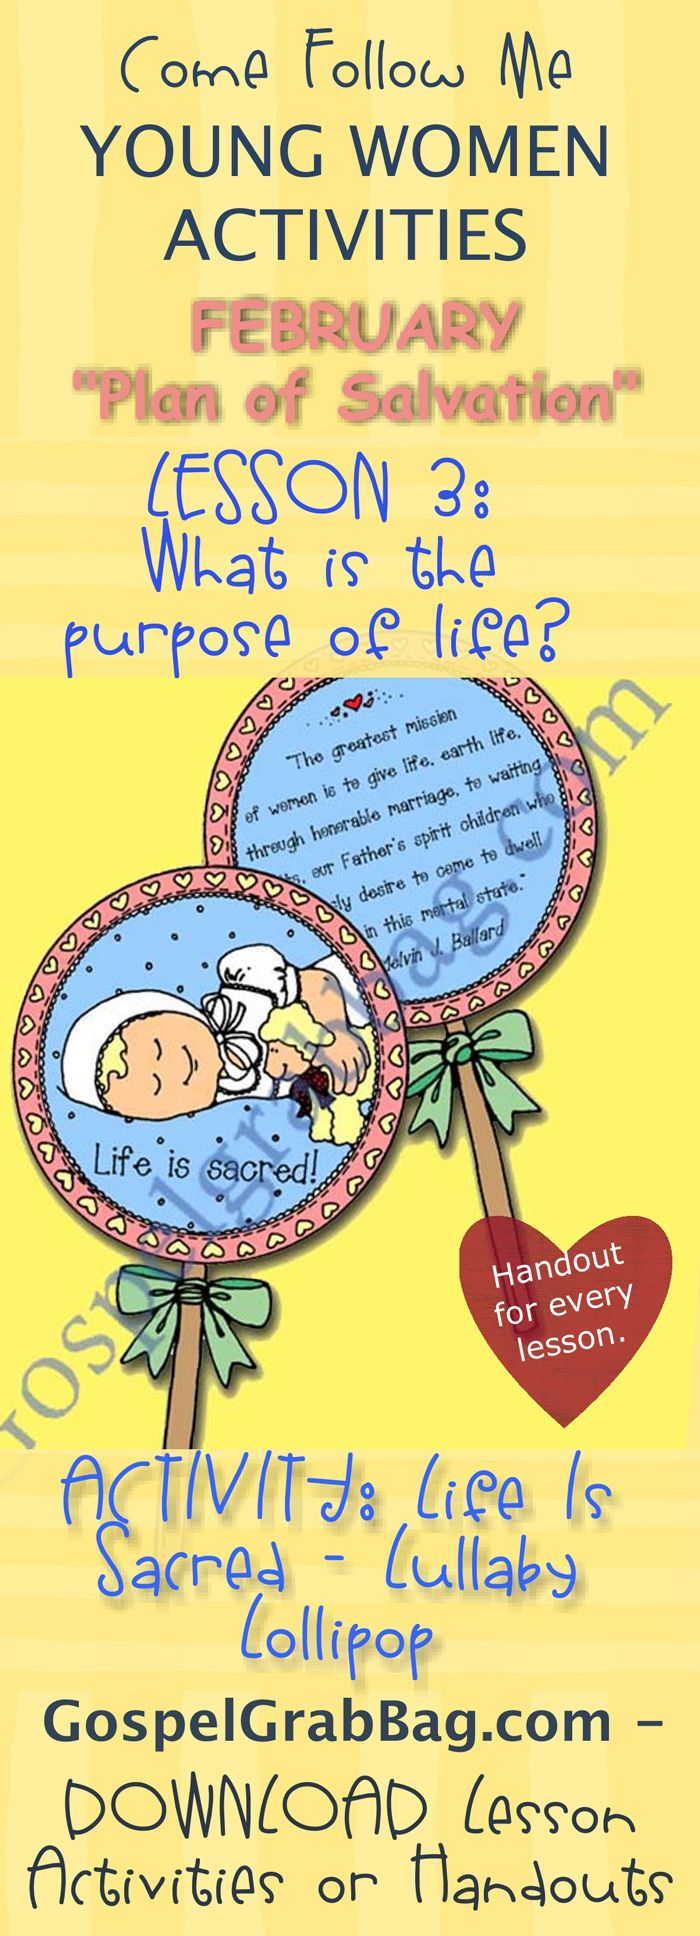 LIFE IS SACRED - LULLABY LOLLIPOP: Come Follow Me – LDS Young Women Activities, February Theme: The Plan of Salvation, Lesson Topic #3: What is the purpose of life? handout for every lesson to download from gospelgrabbag.com